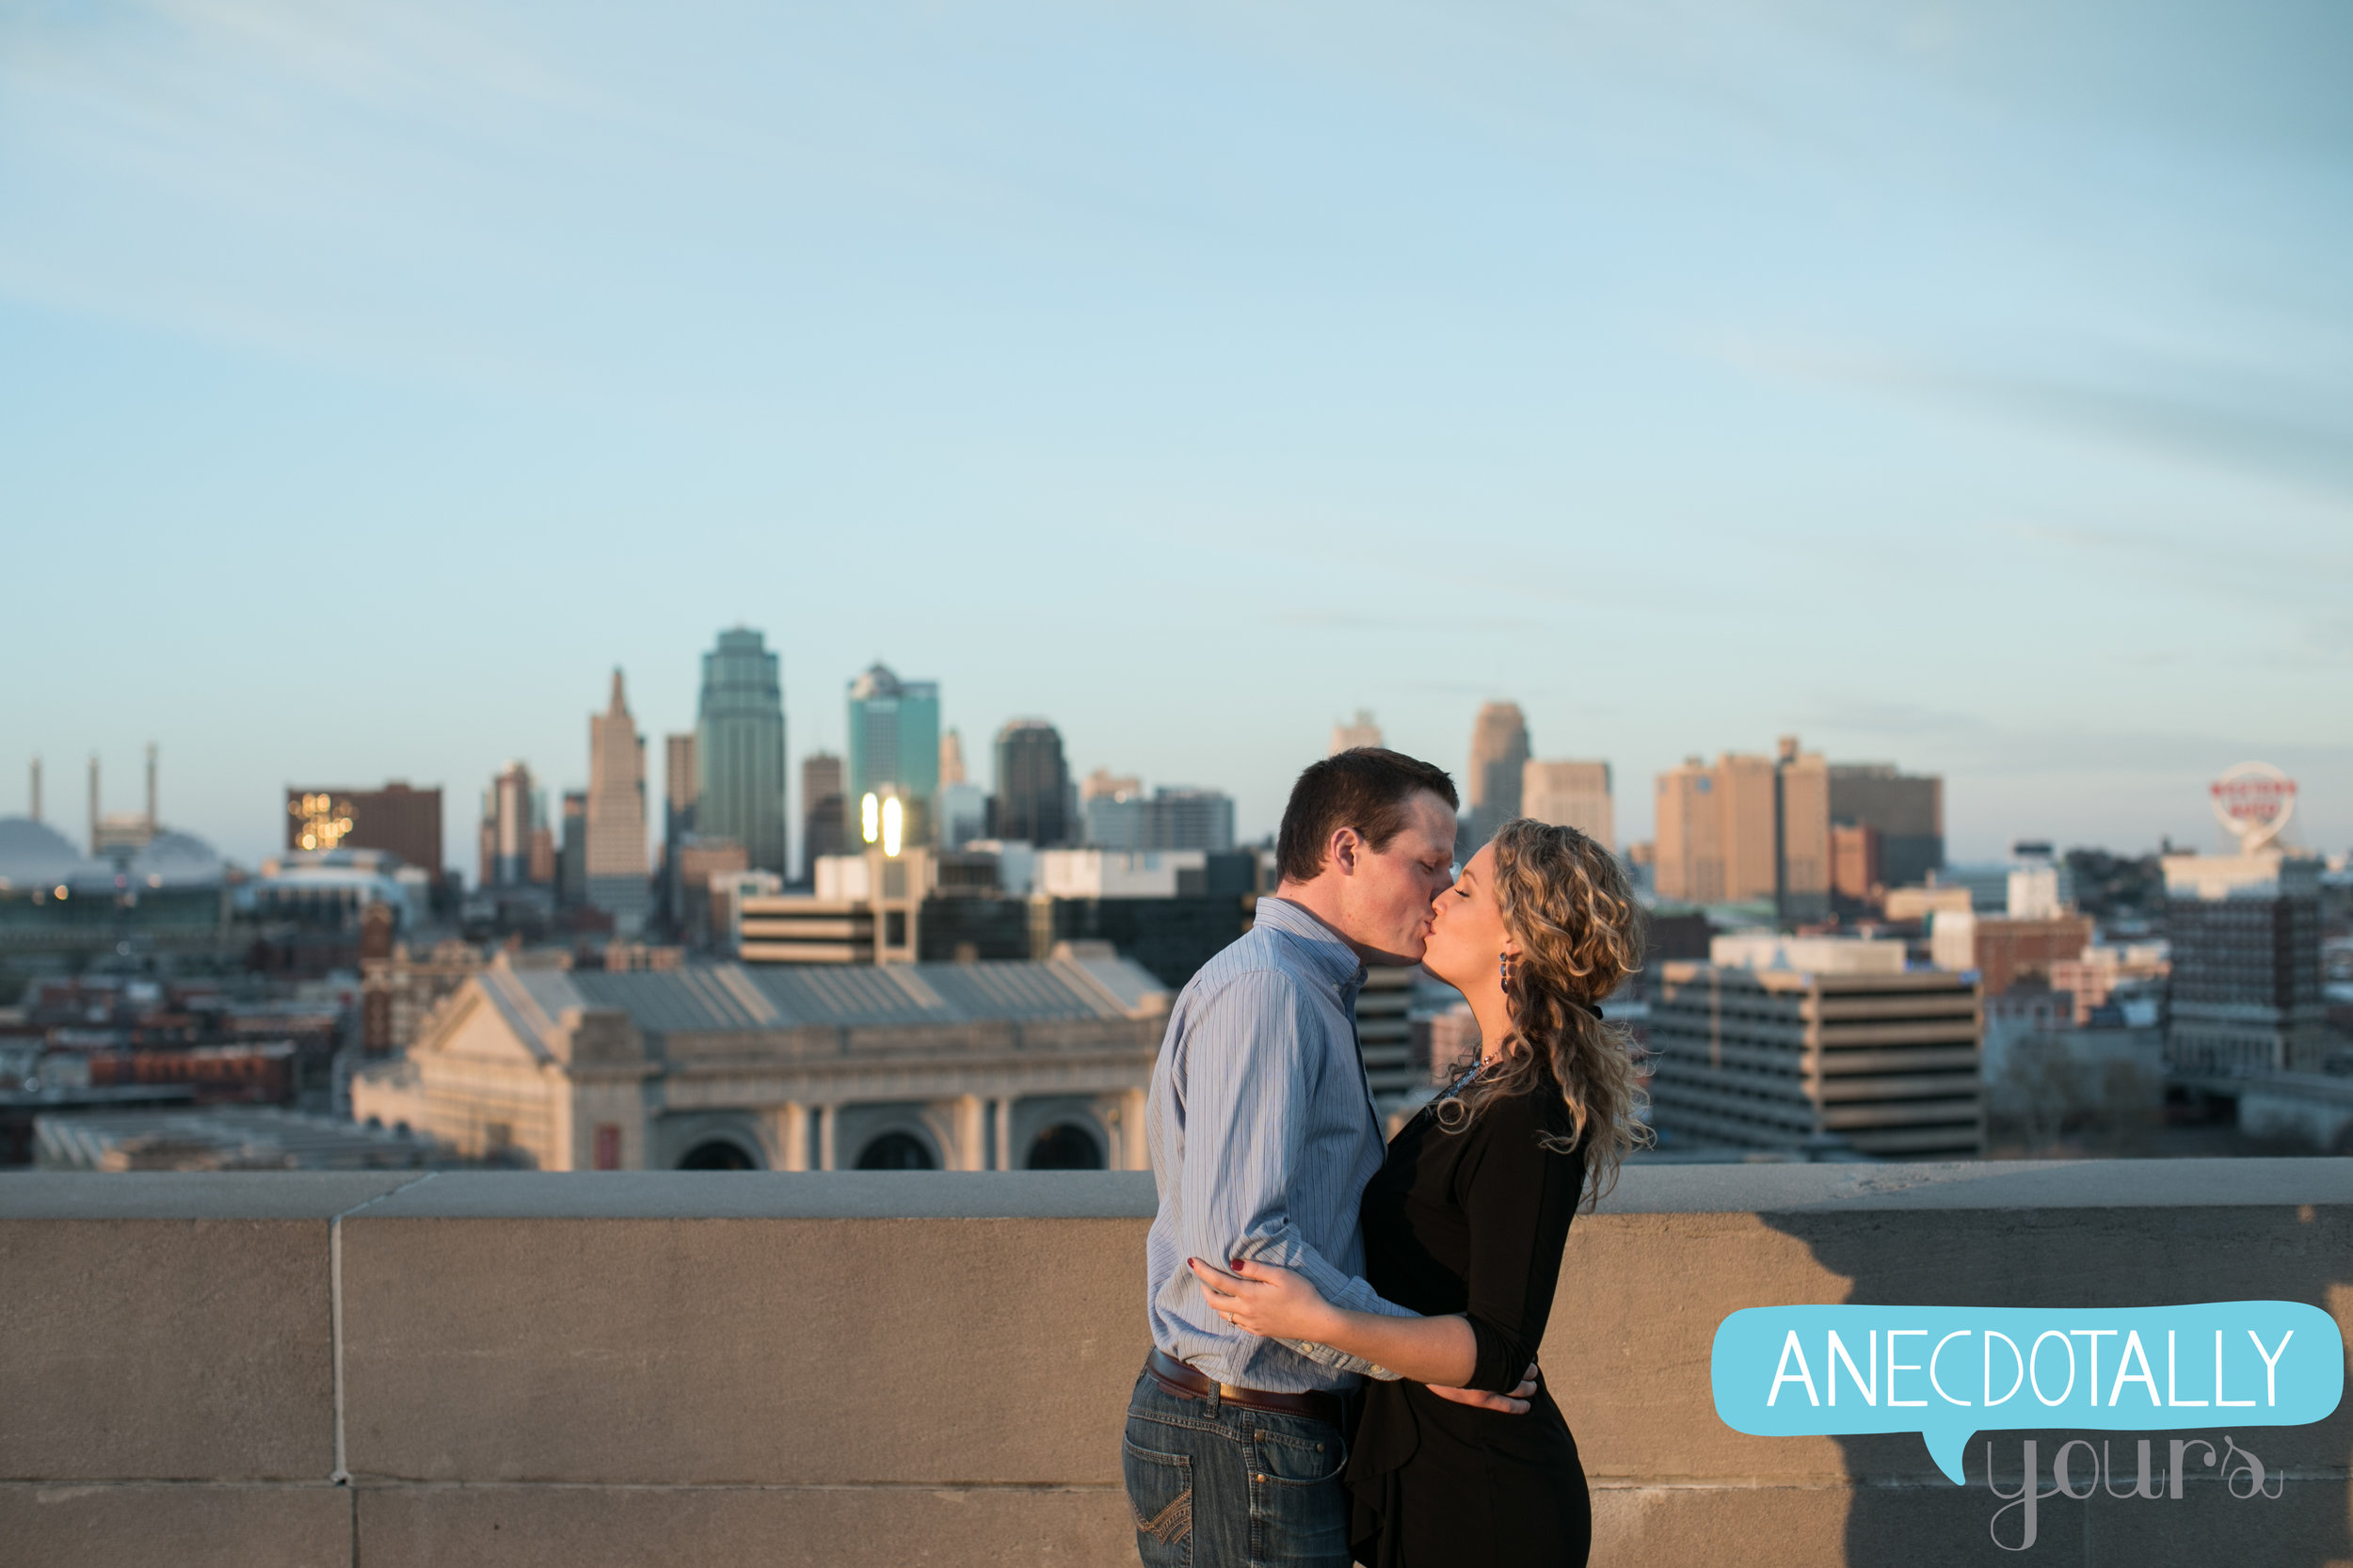 maile-patrick-engagement-16.jpg